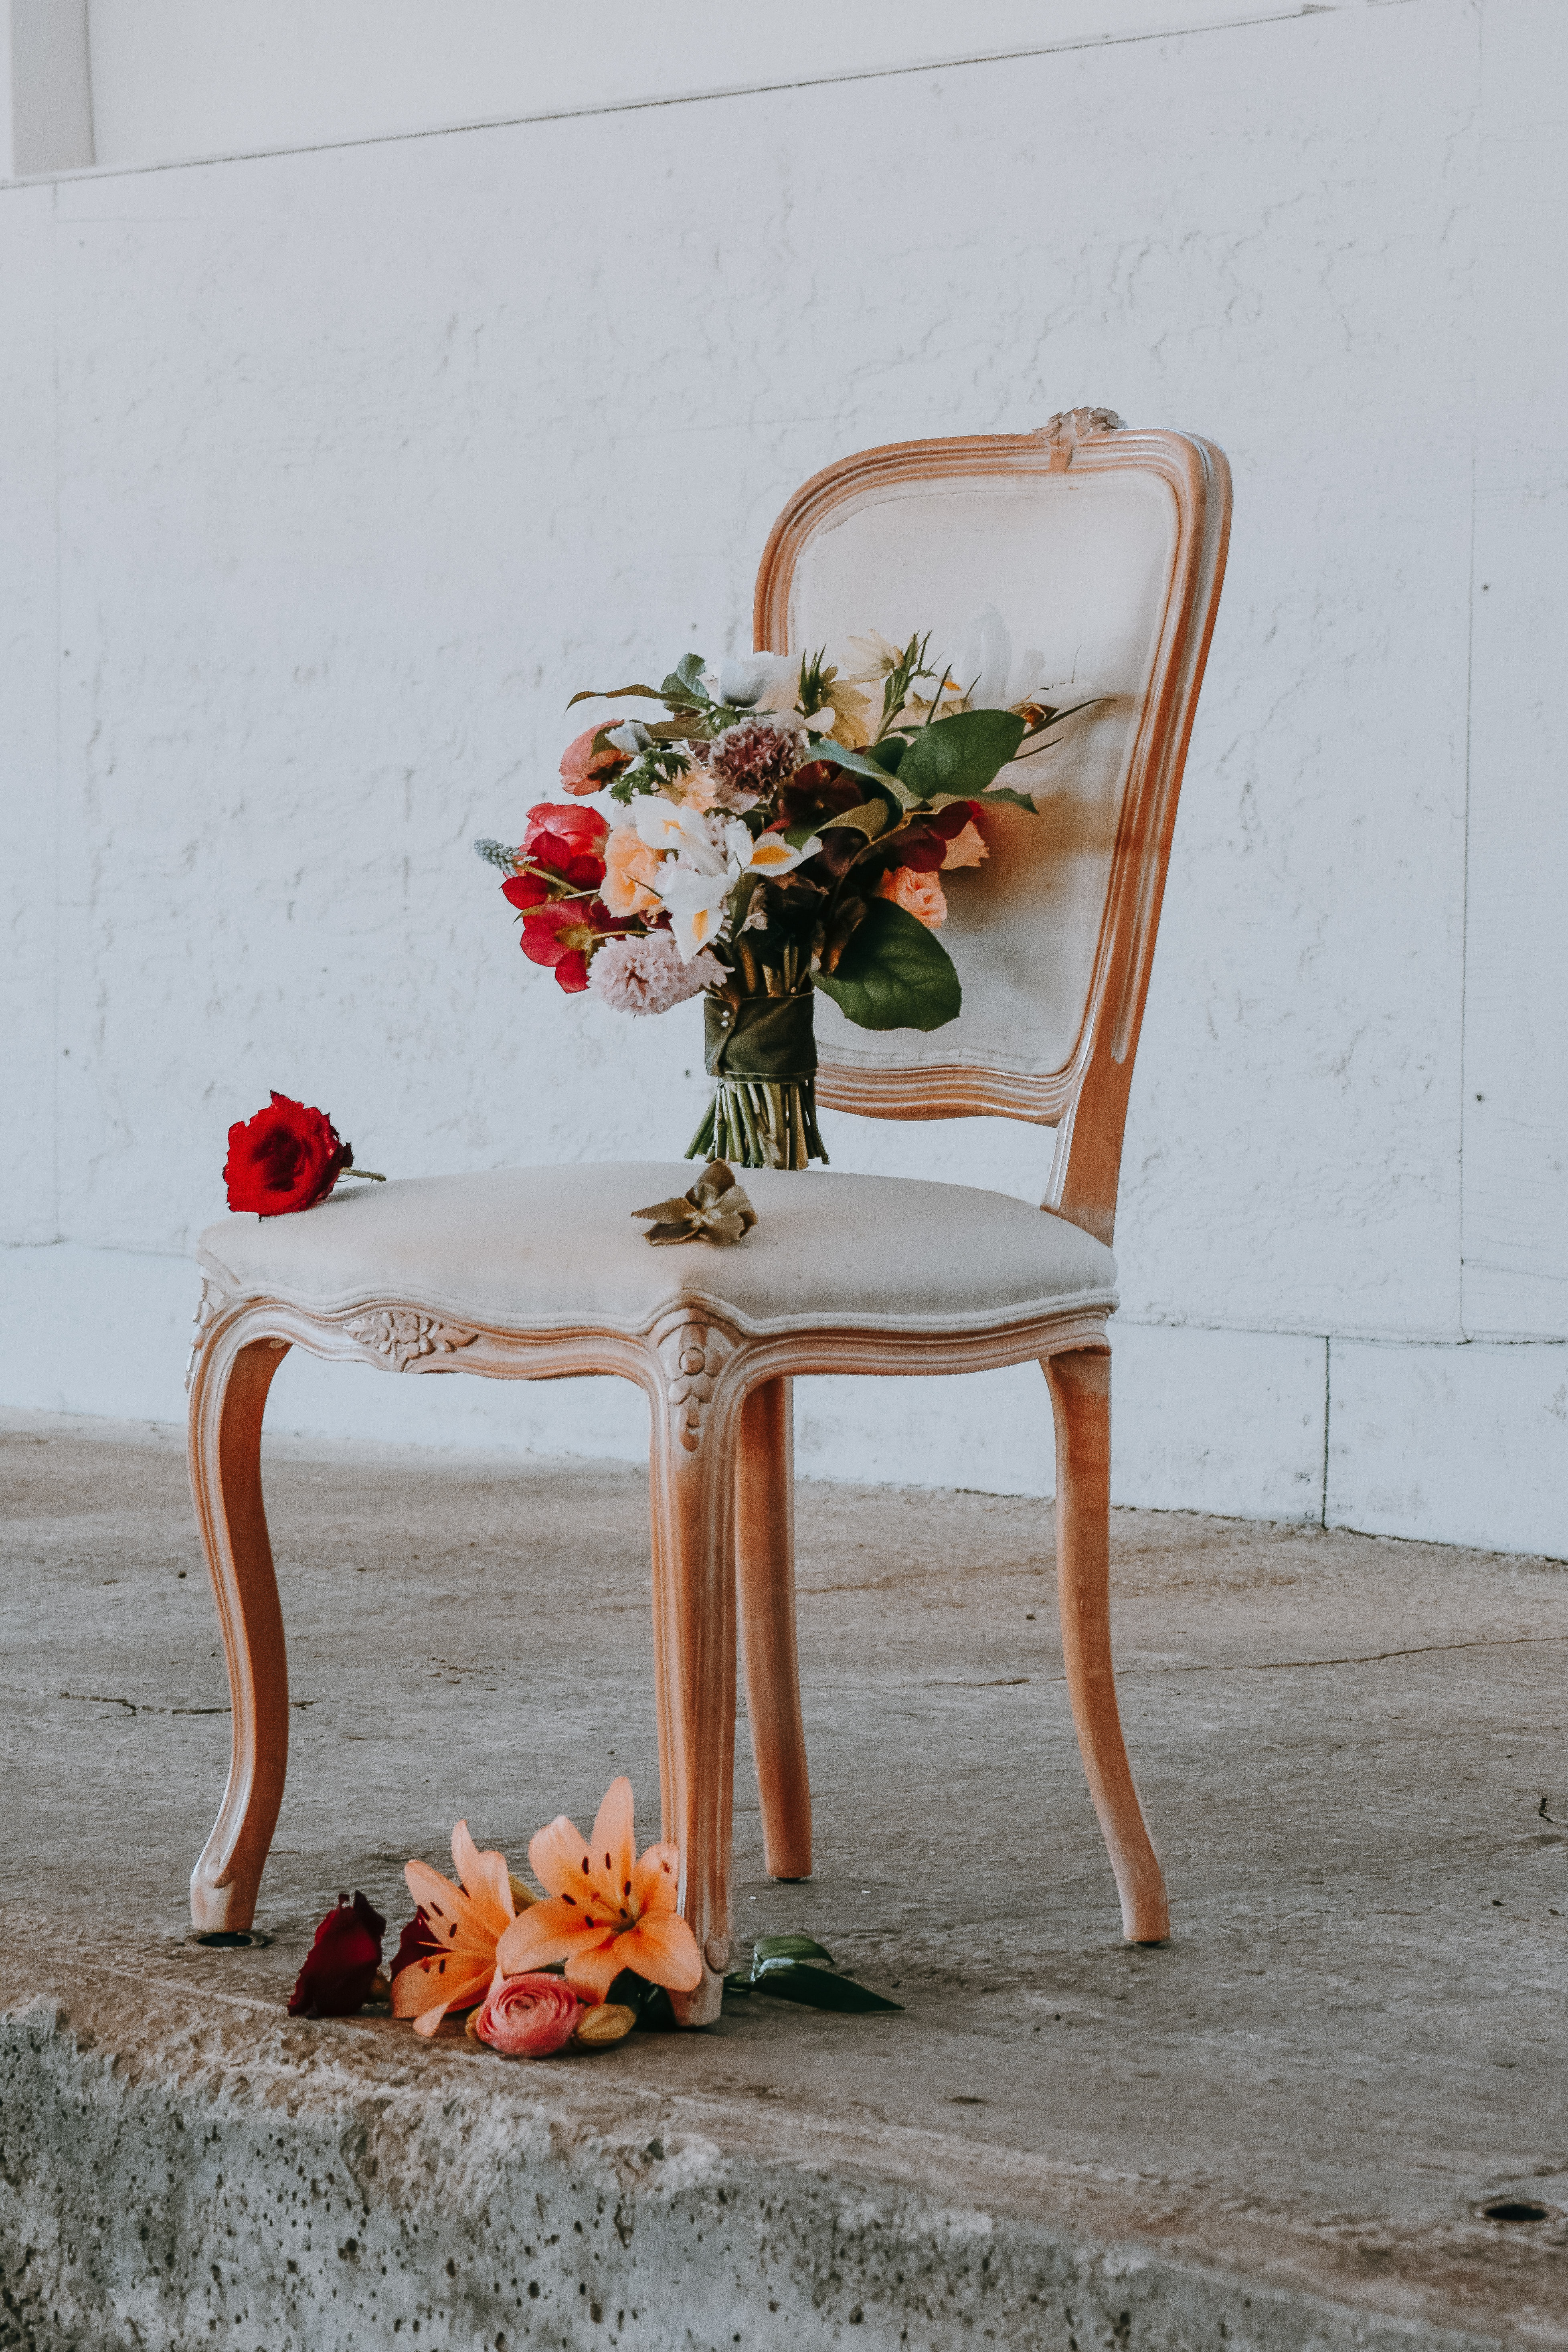 assorted-color flowers on brown wooden framed beige padded chair near wall